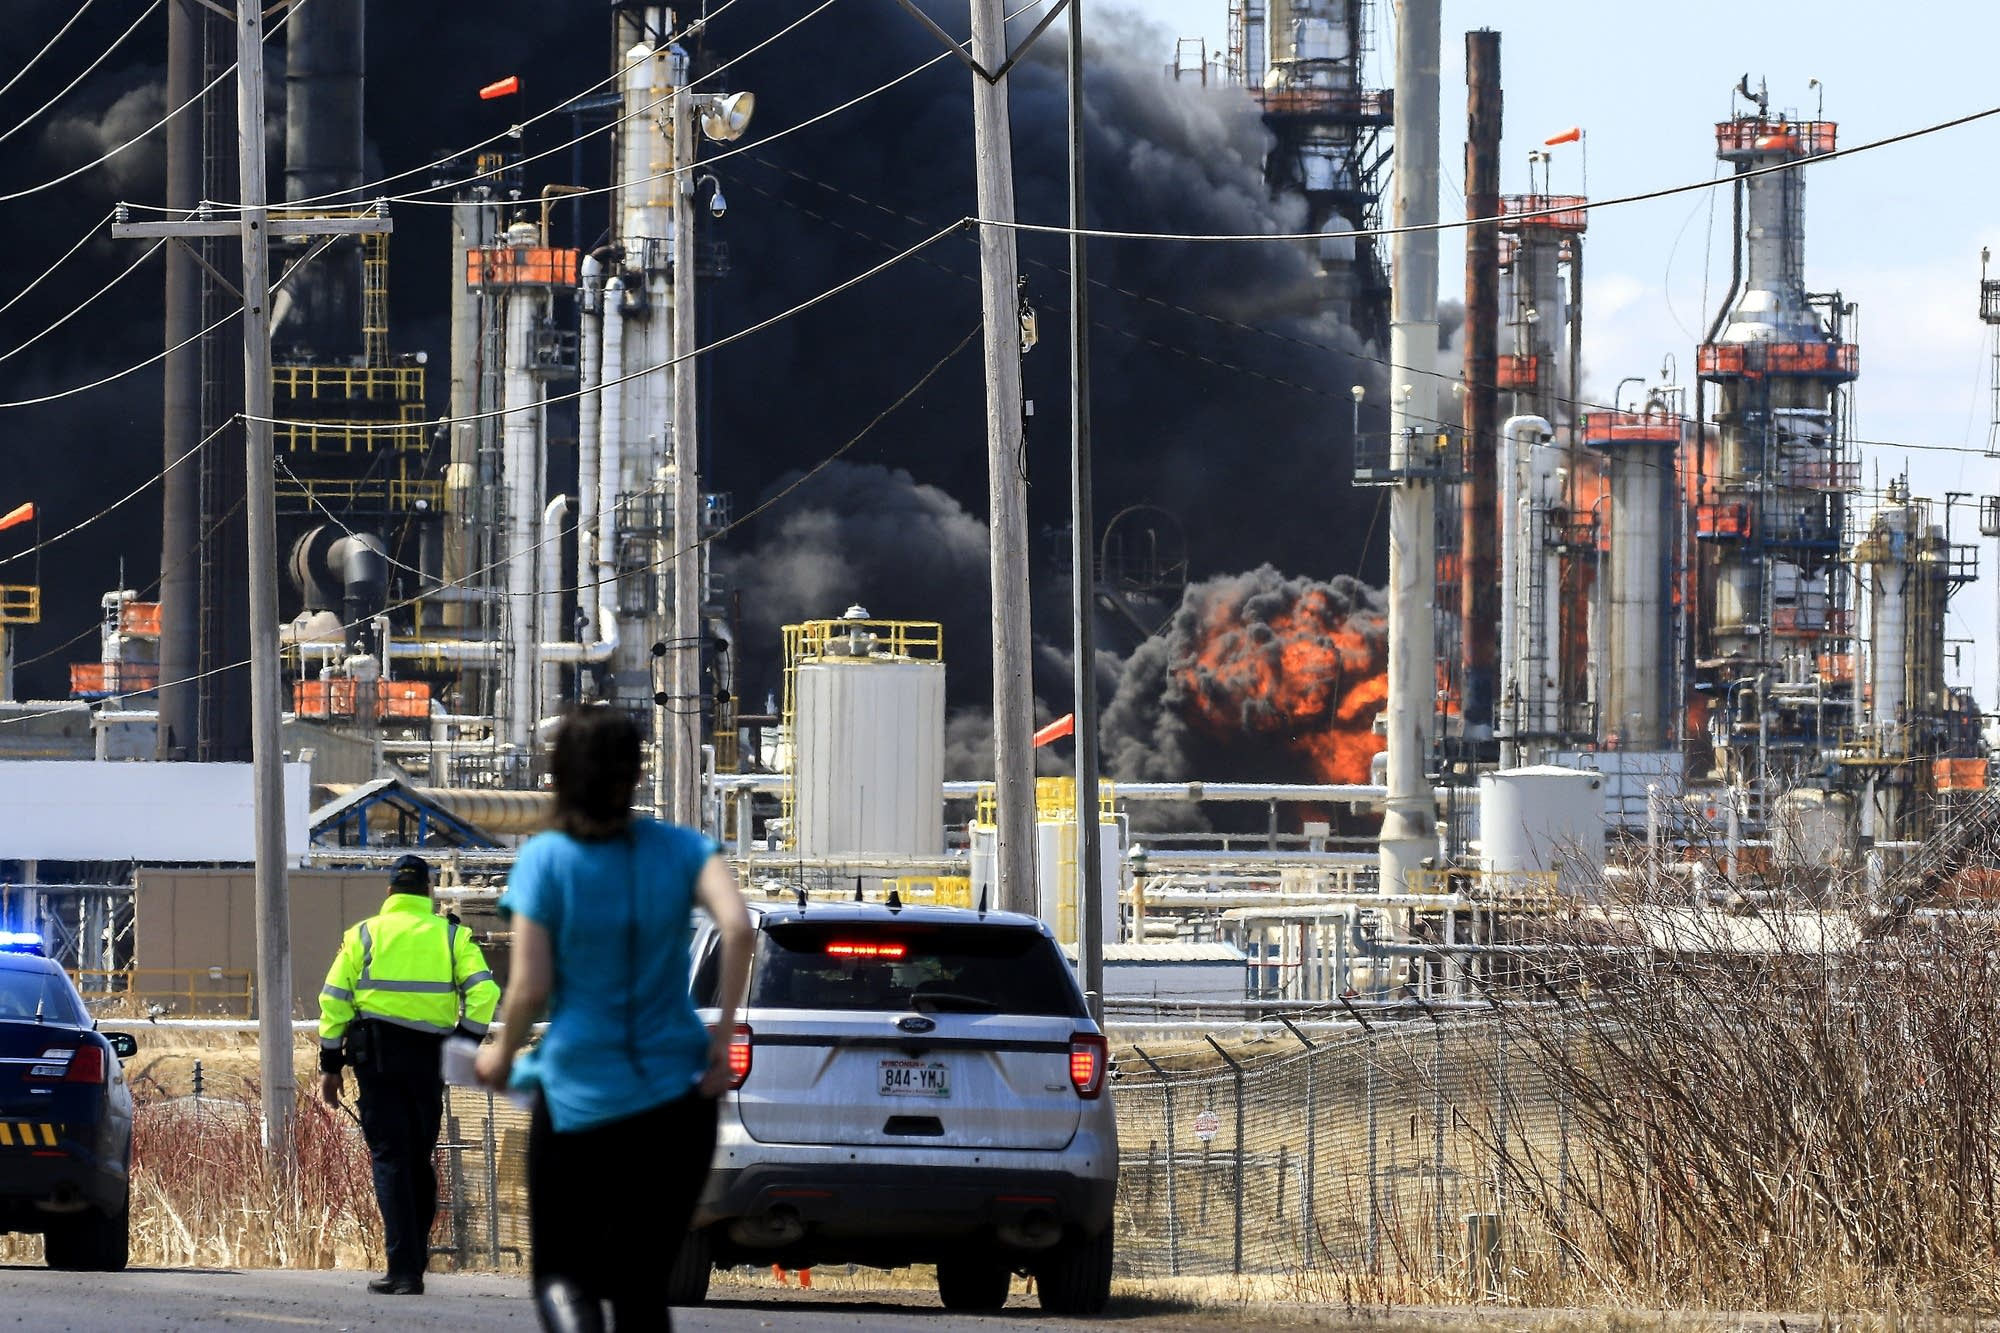 A large fireball erupts at the Calumet refinery.